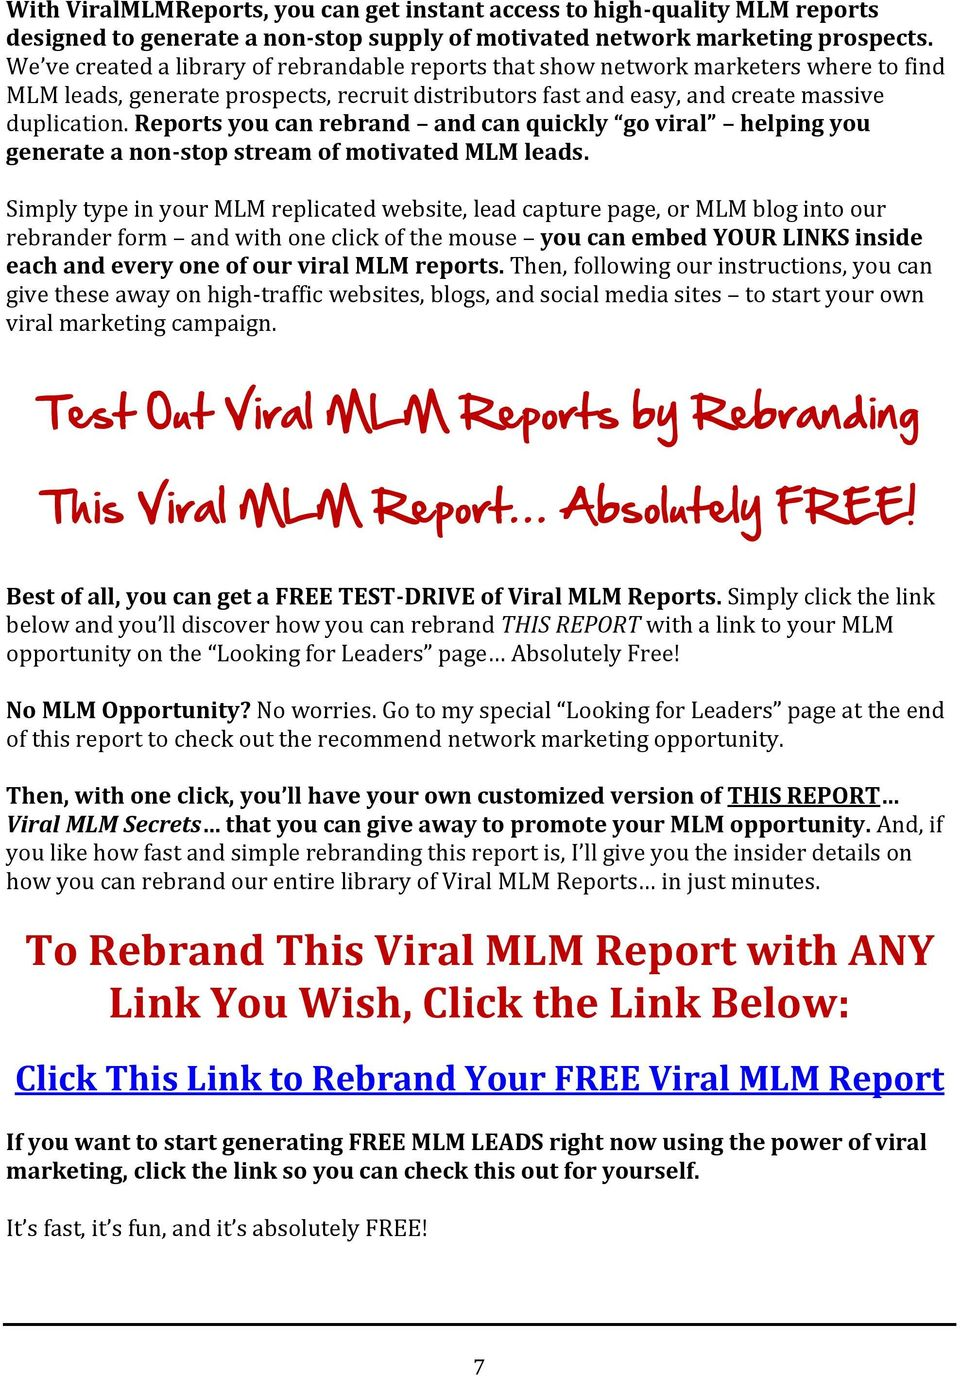 Reports you can rebrand and can quickly go viral helping you generate a non-stop stream of motivated MLM leads.